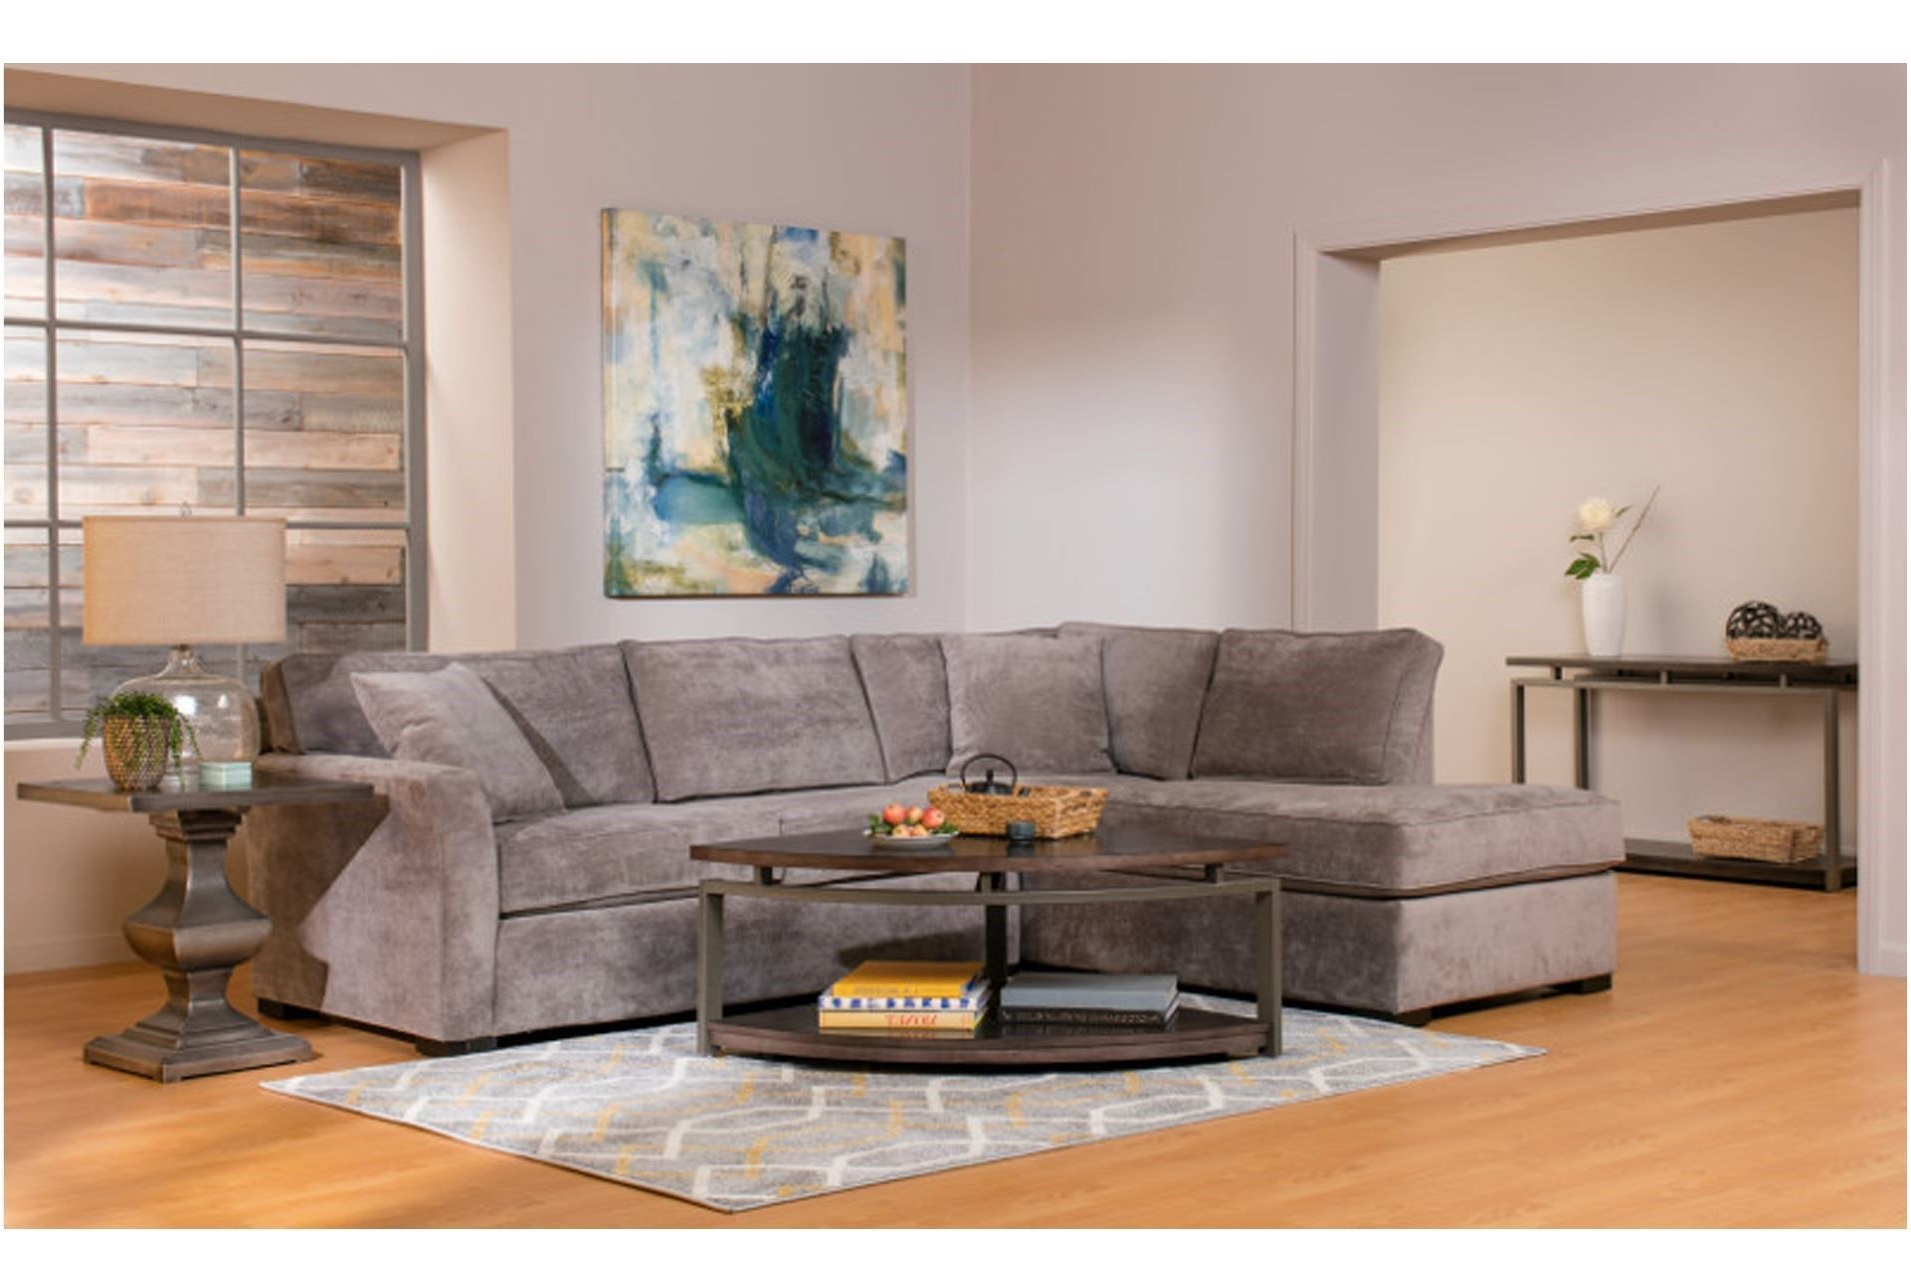 Aspen 2 Piece Sleeper Sectionals With Laf Chaise In Newest Aspen 2 Piece Sectional W/laf Chaise In (View 11 of 20)